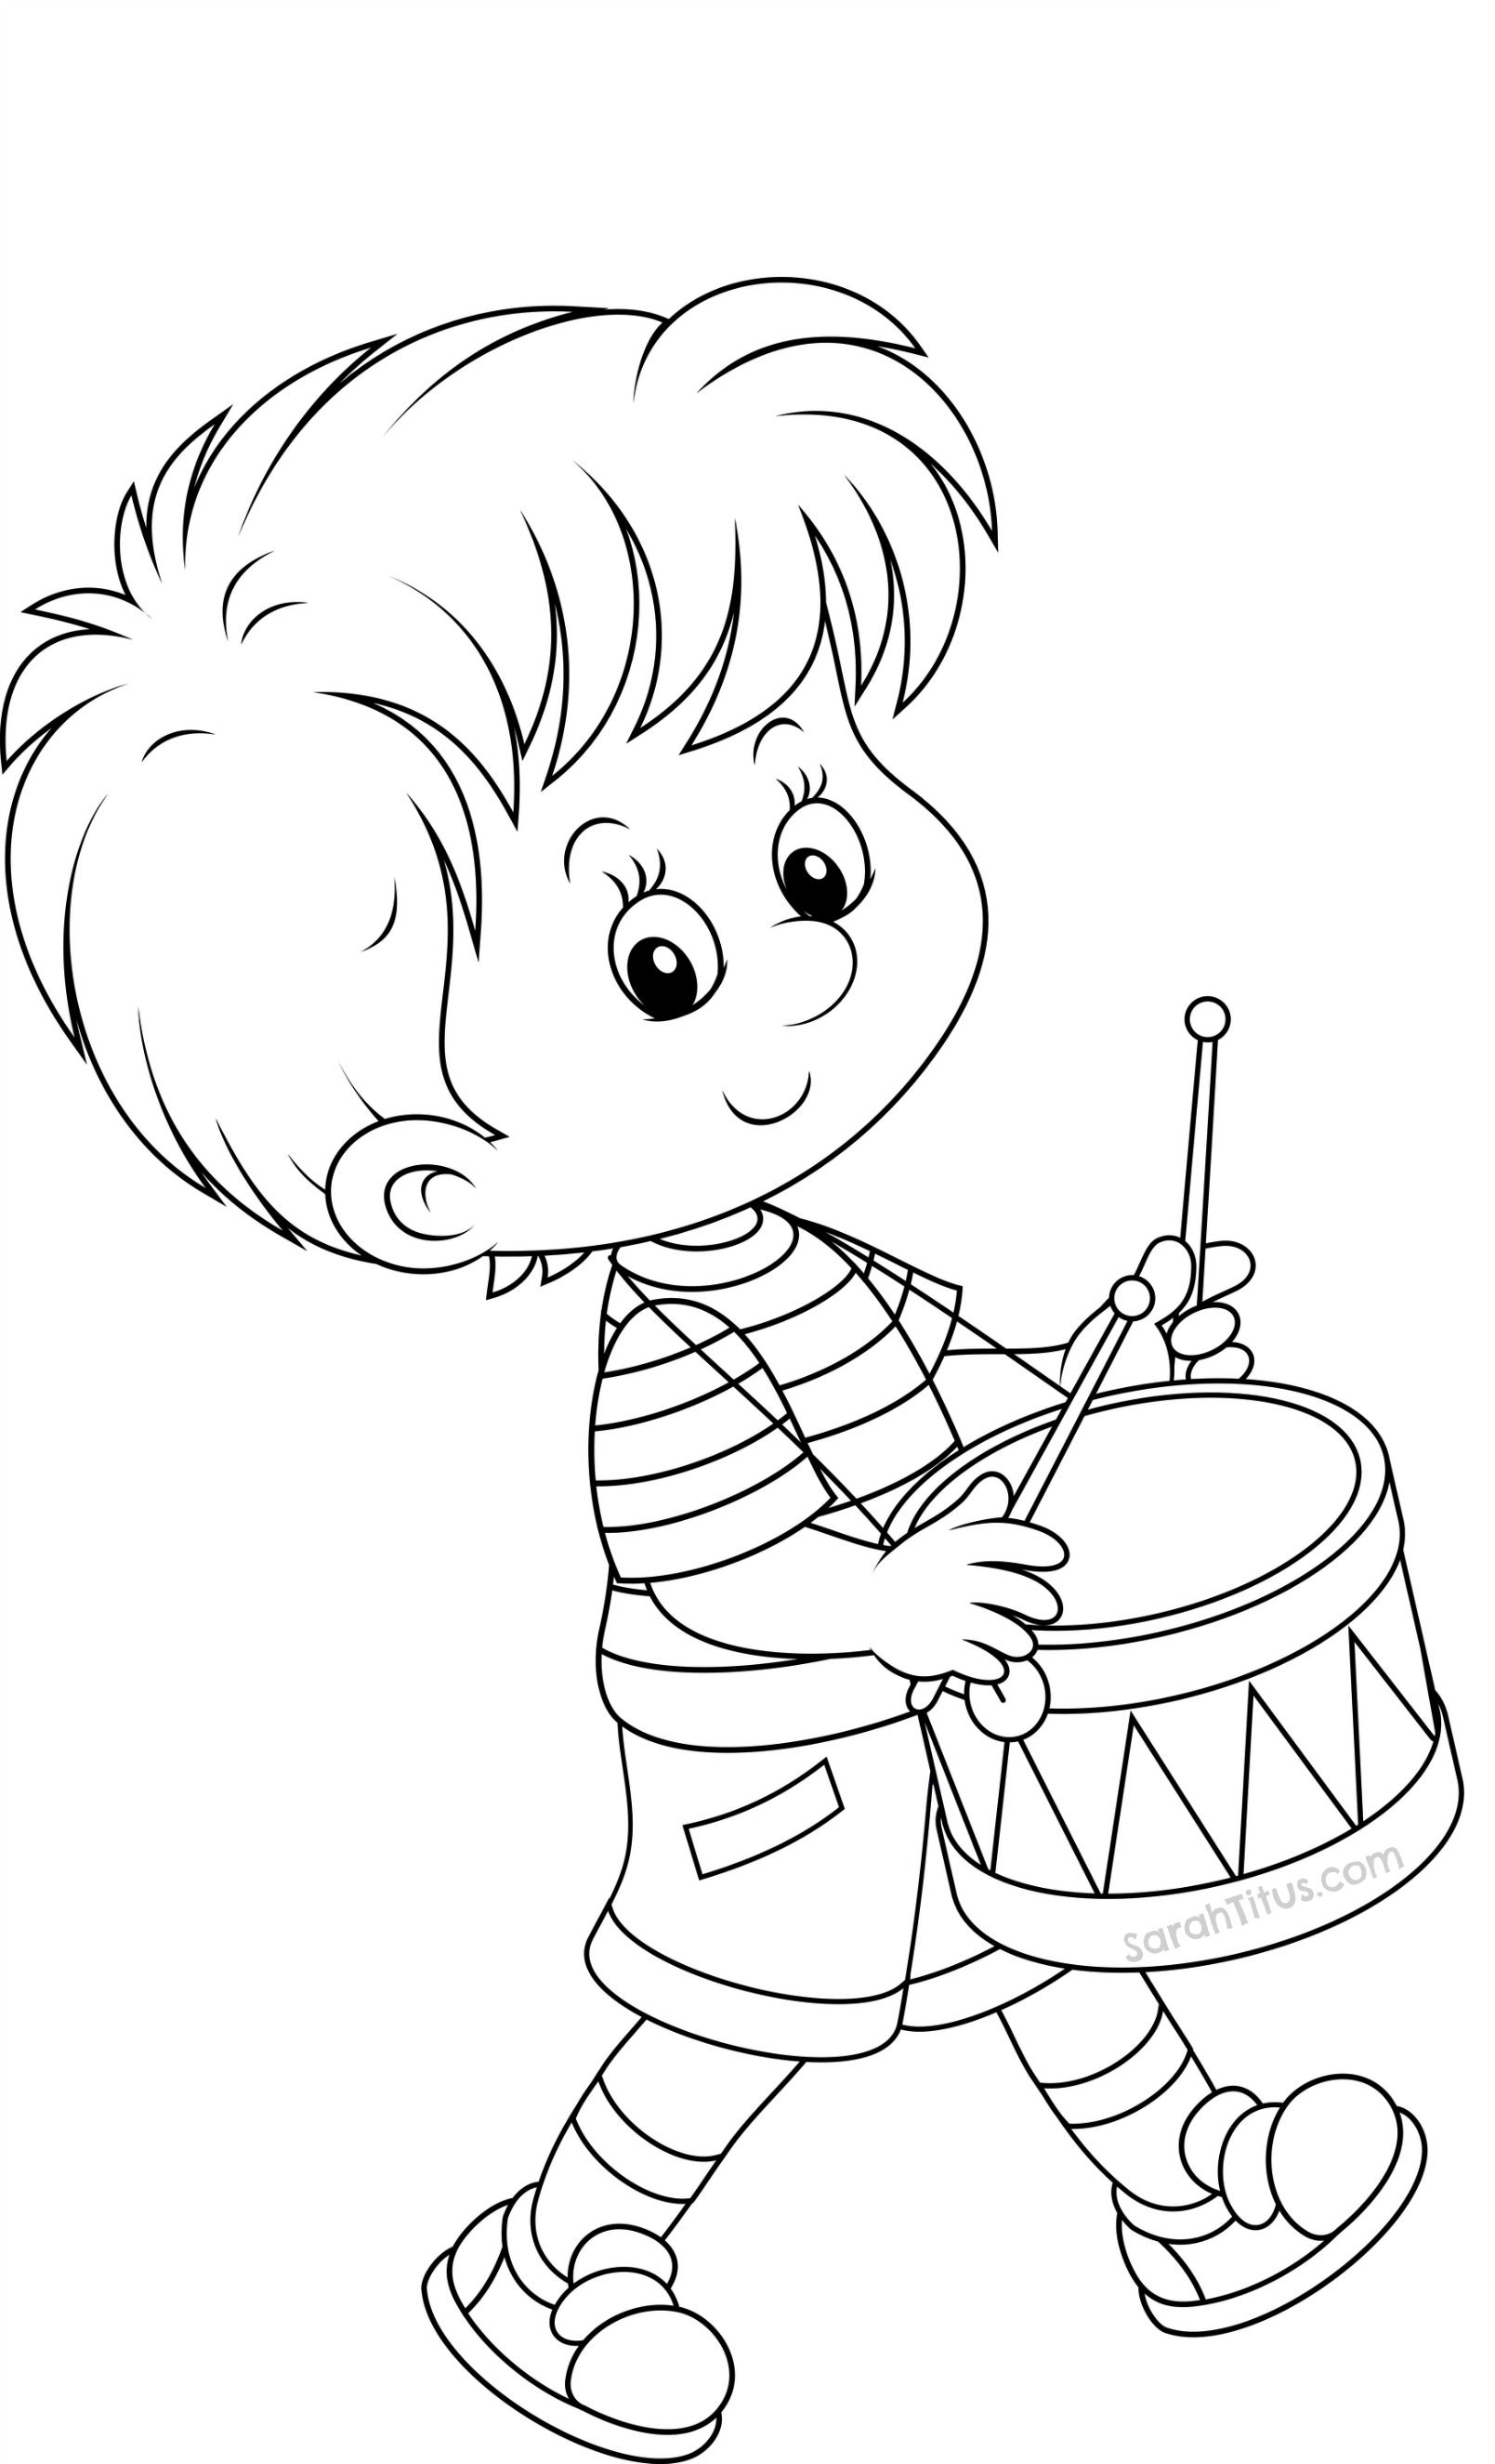 back to school coloring pages sarahtituscom - Coloring Page Of A School